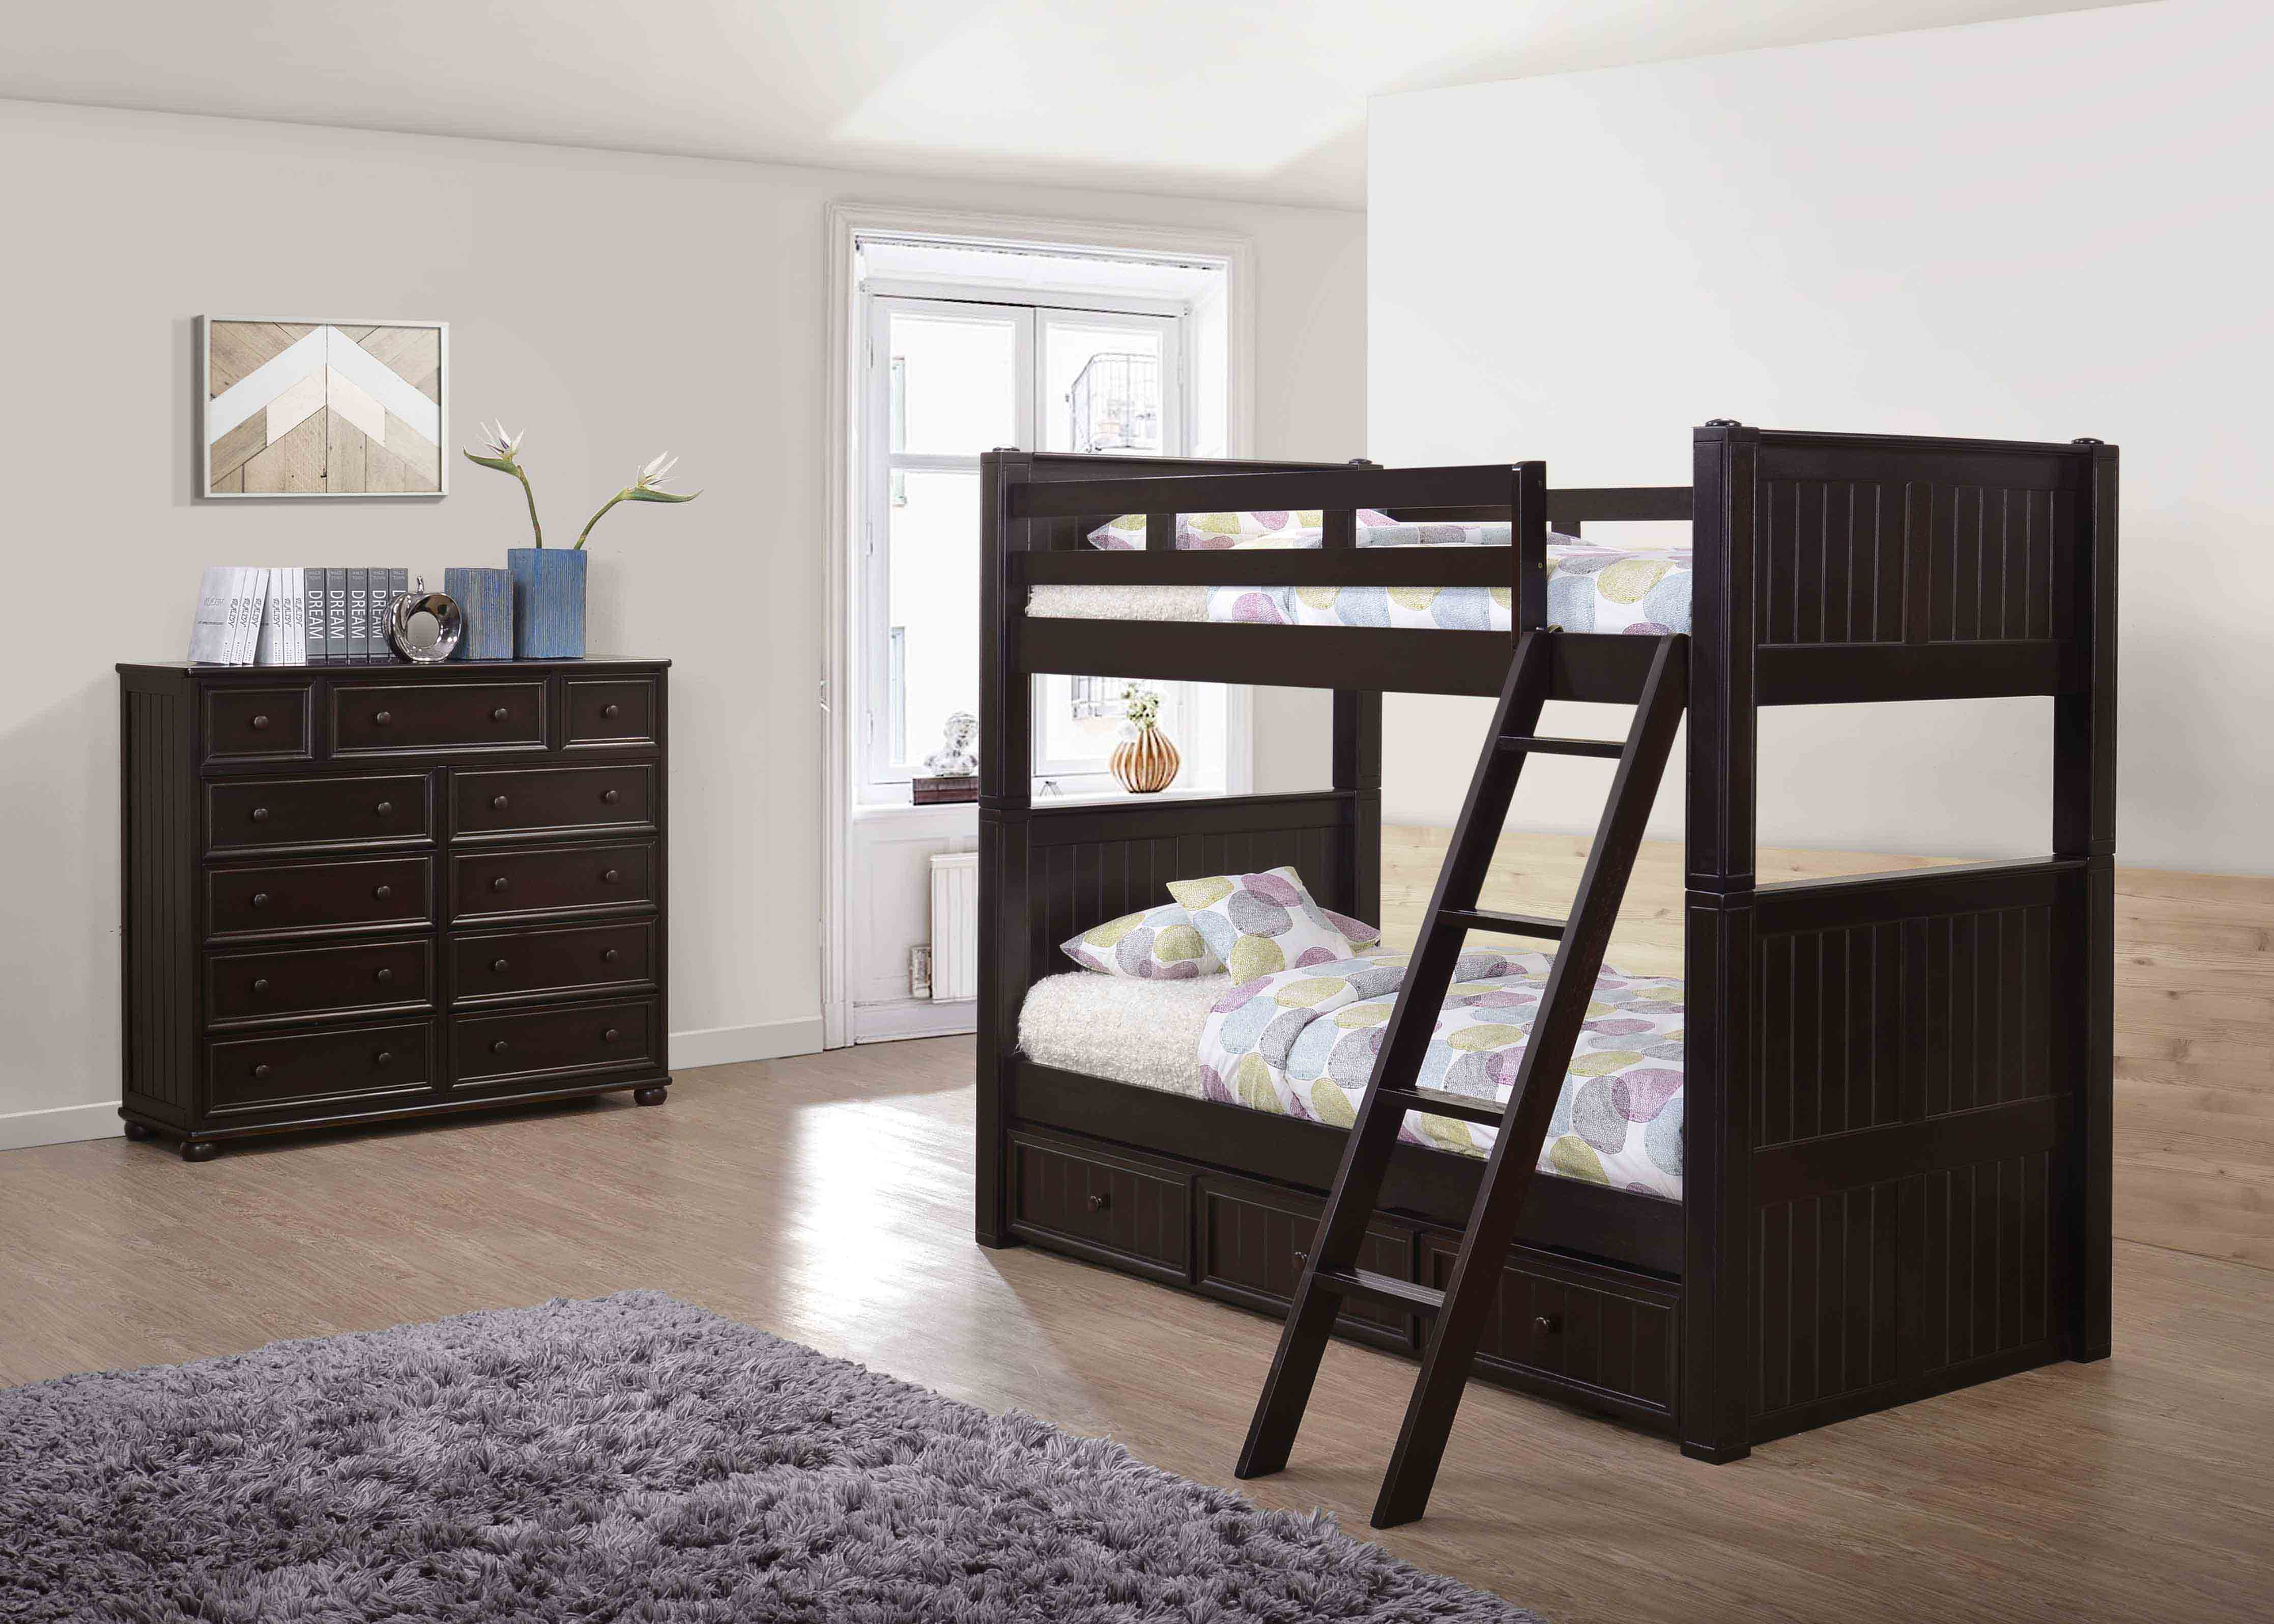 Jay furniture home design ideas and pictures for Jay be bunk bed